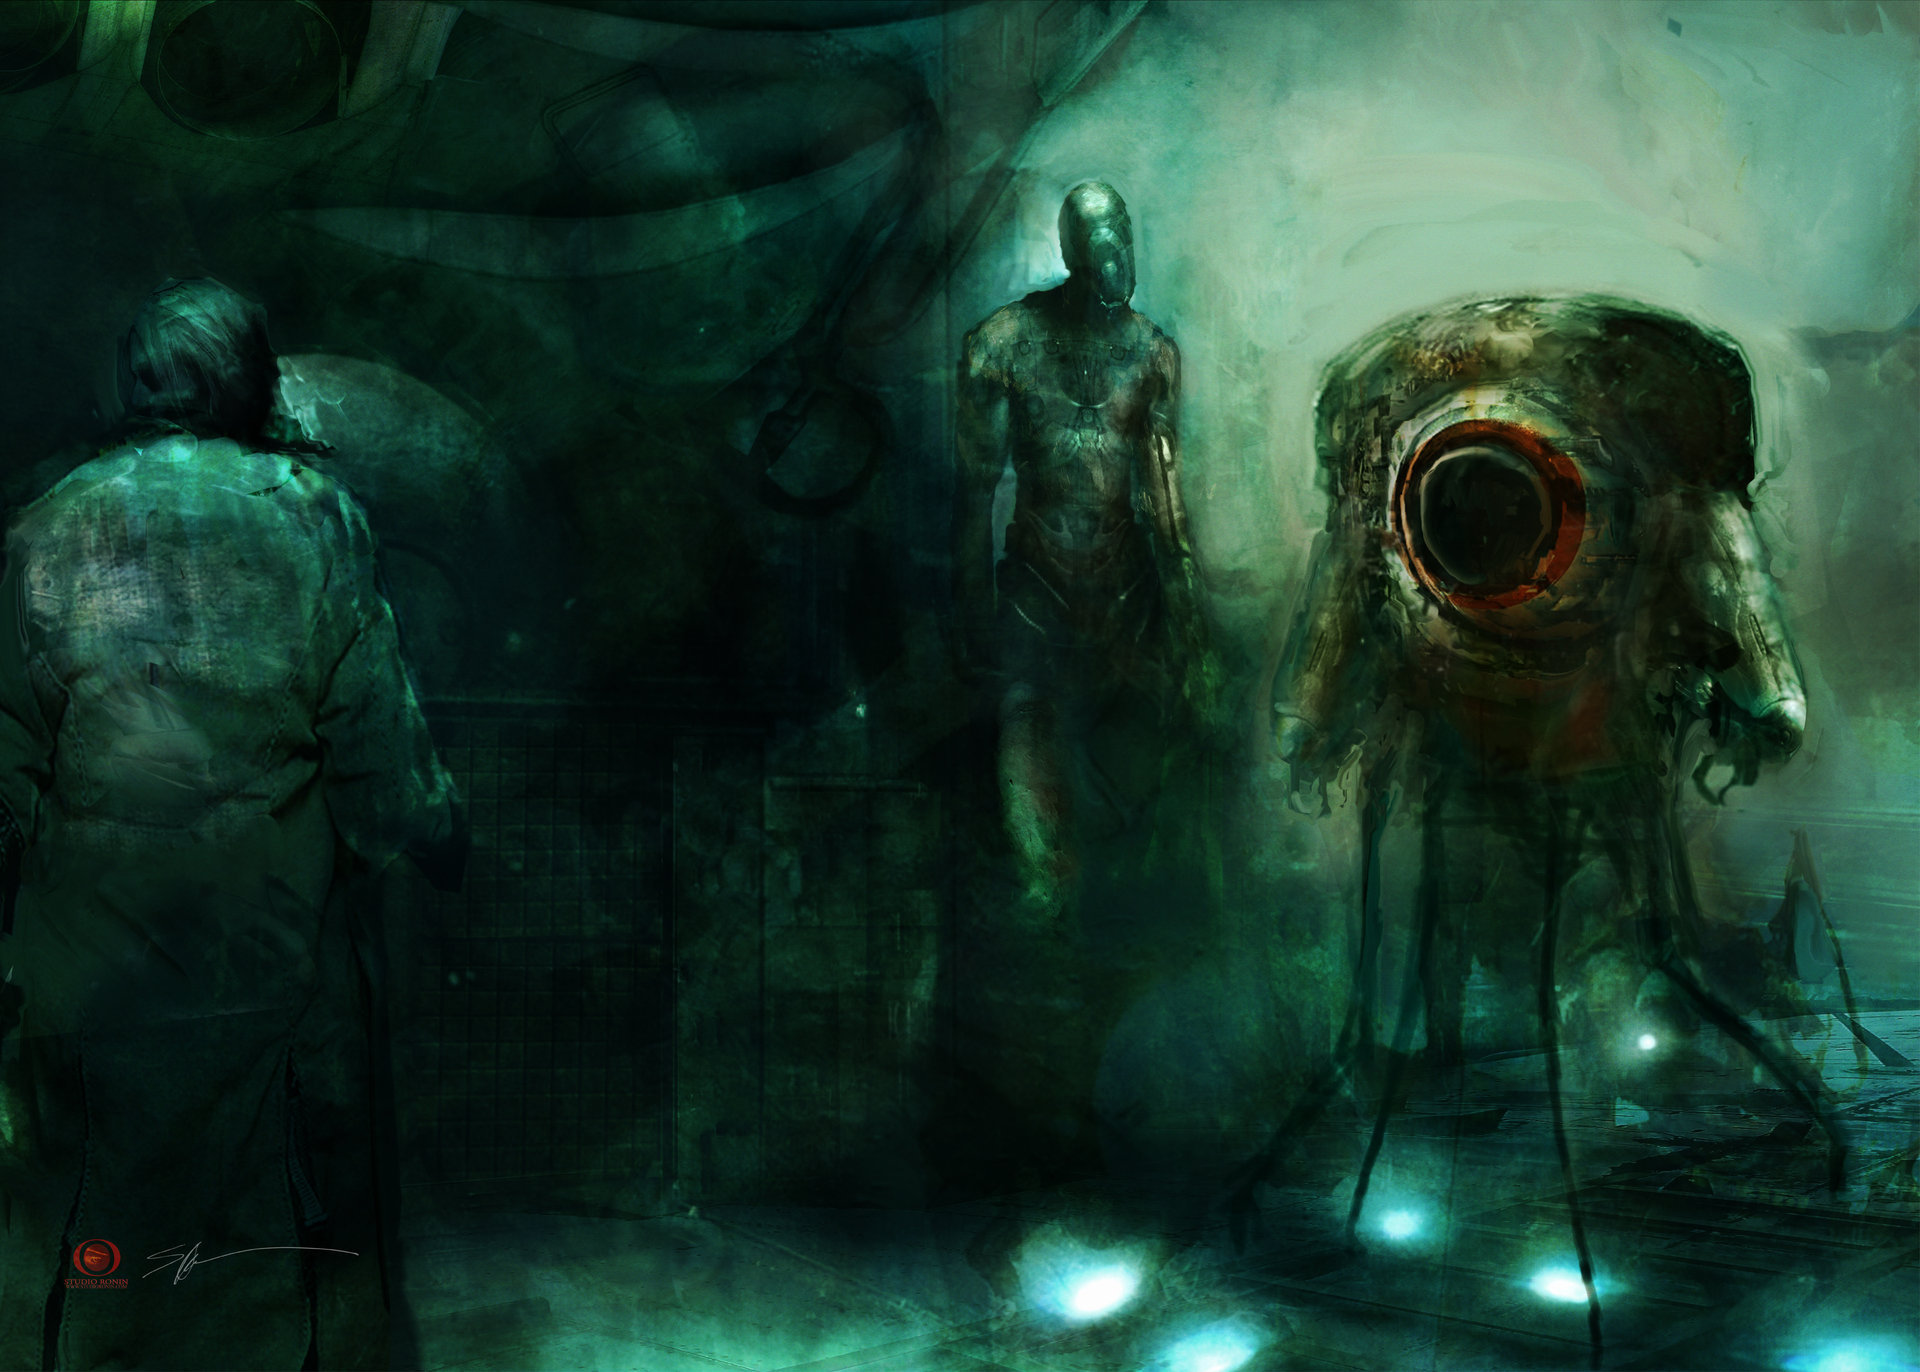 Christopher shy society6print31 copy